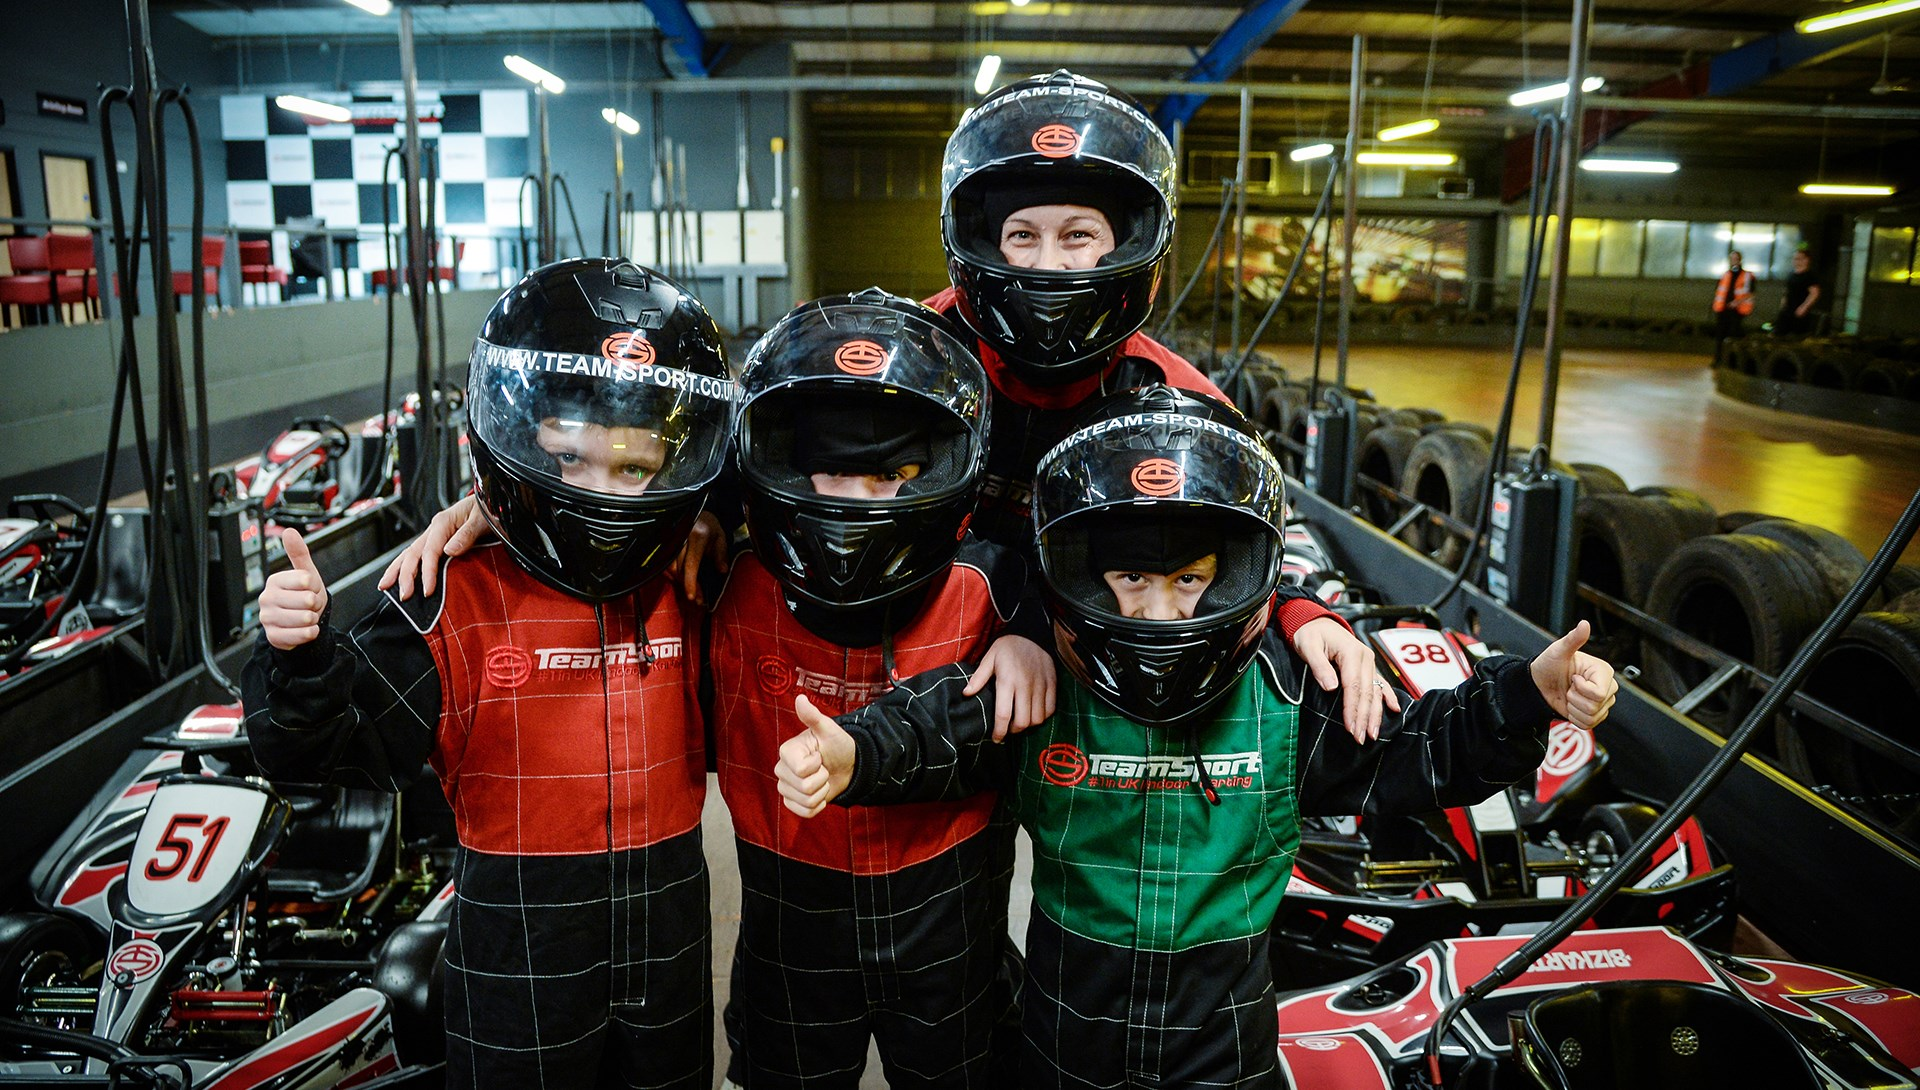 Go Kart Racing Events - Kids & Family Go Karting